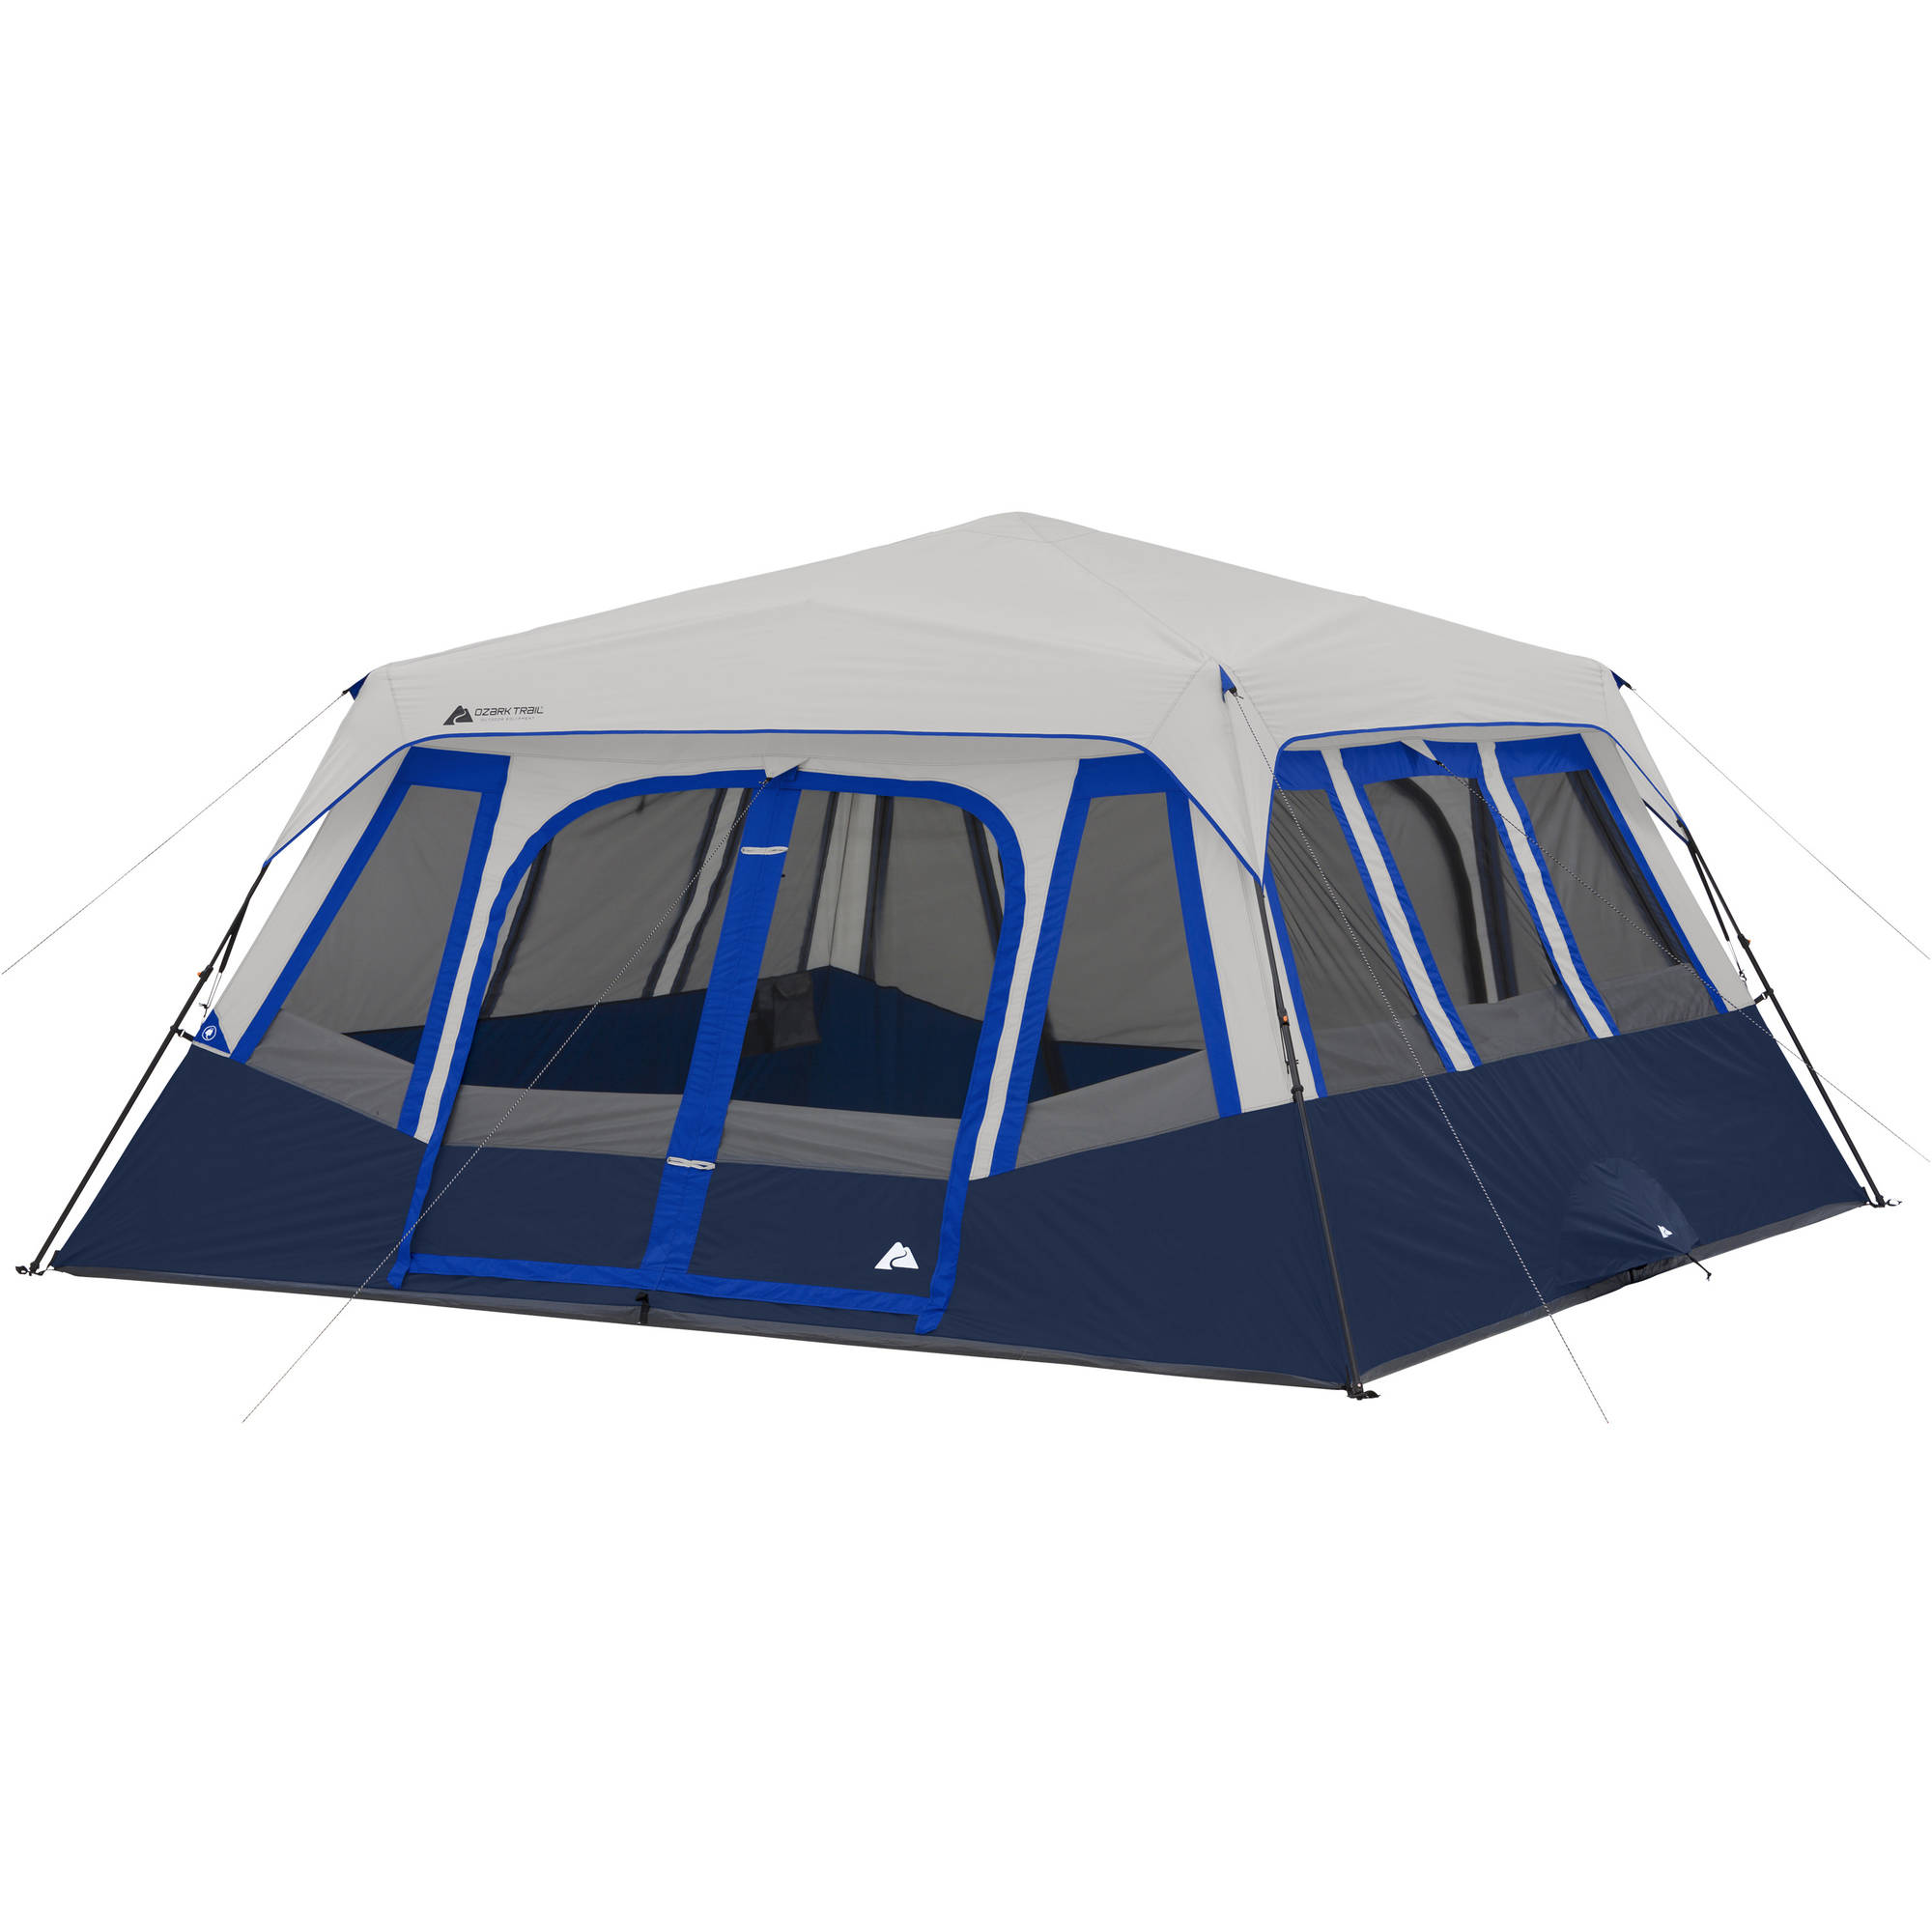 Image is loading Ozark-Trail-14-Person-2-Room-Instant-Cabin-  sc 1 st  eBay & Ozark Trail 14-Person 2 Room Instant Cabin Tent | eBay